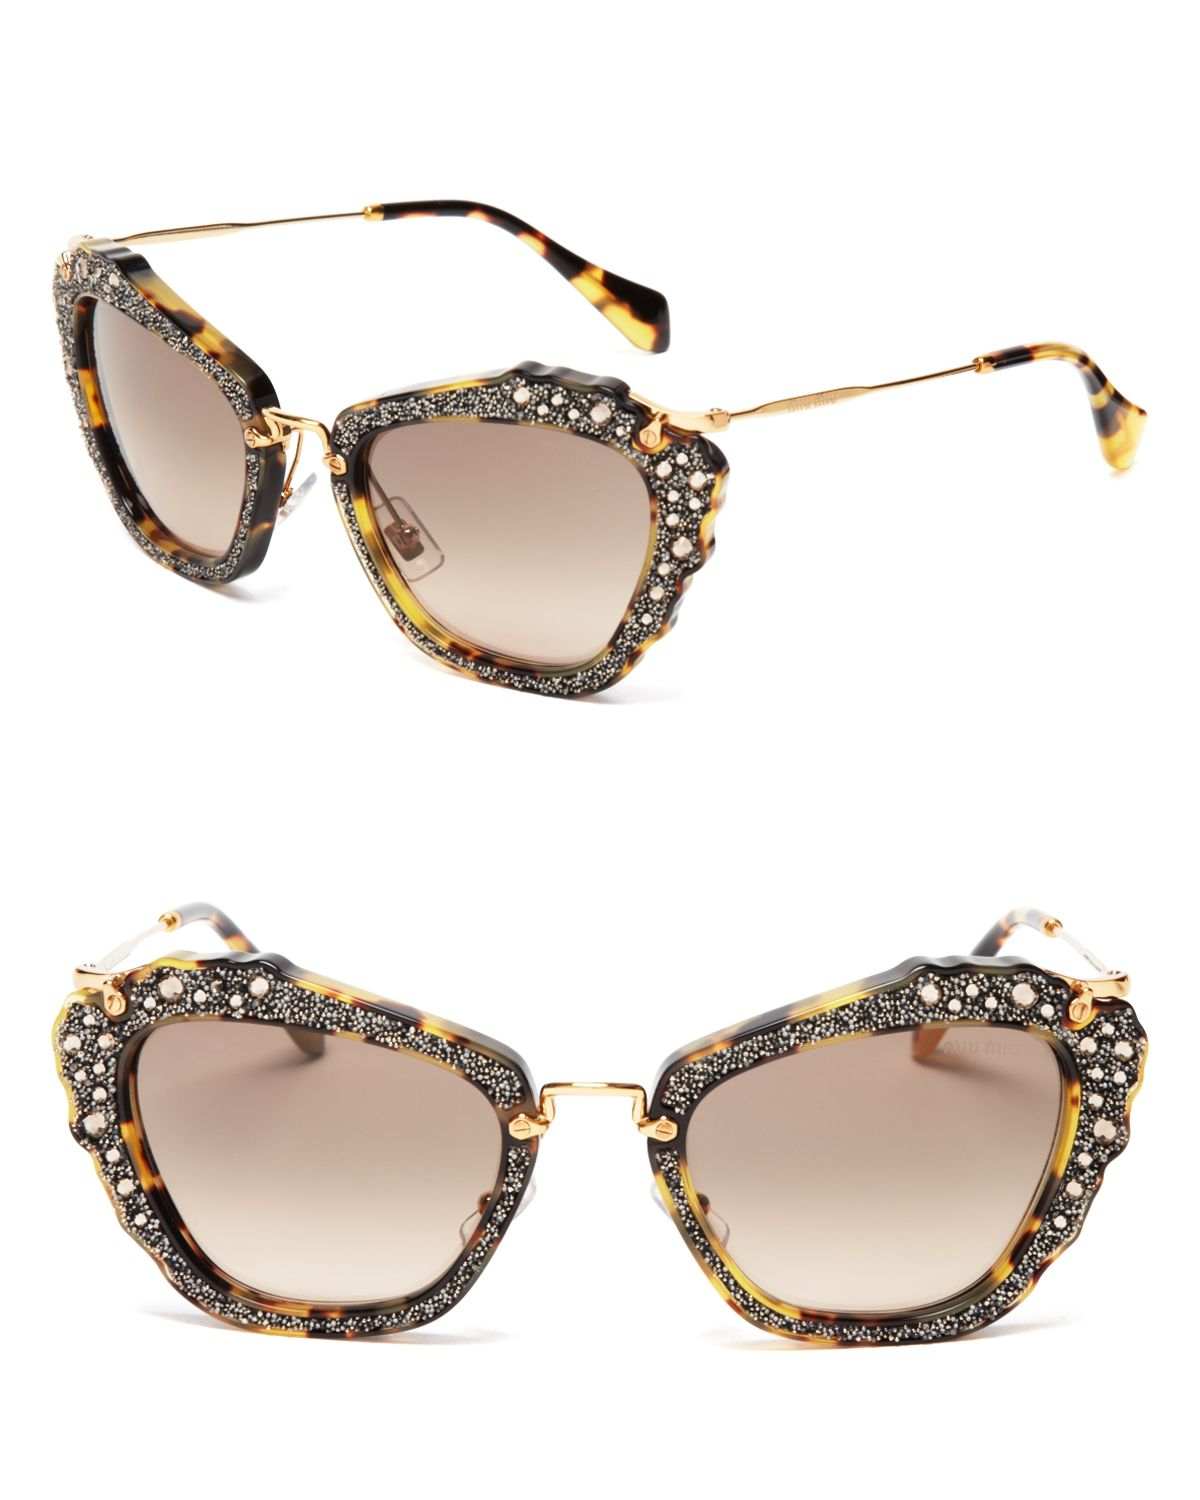 fbcffb0c3c86 Miu Miu Embellished Cat Eye Sunglasses in Gray - Lyst